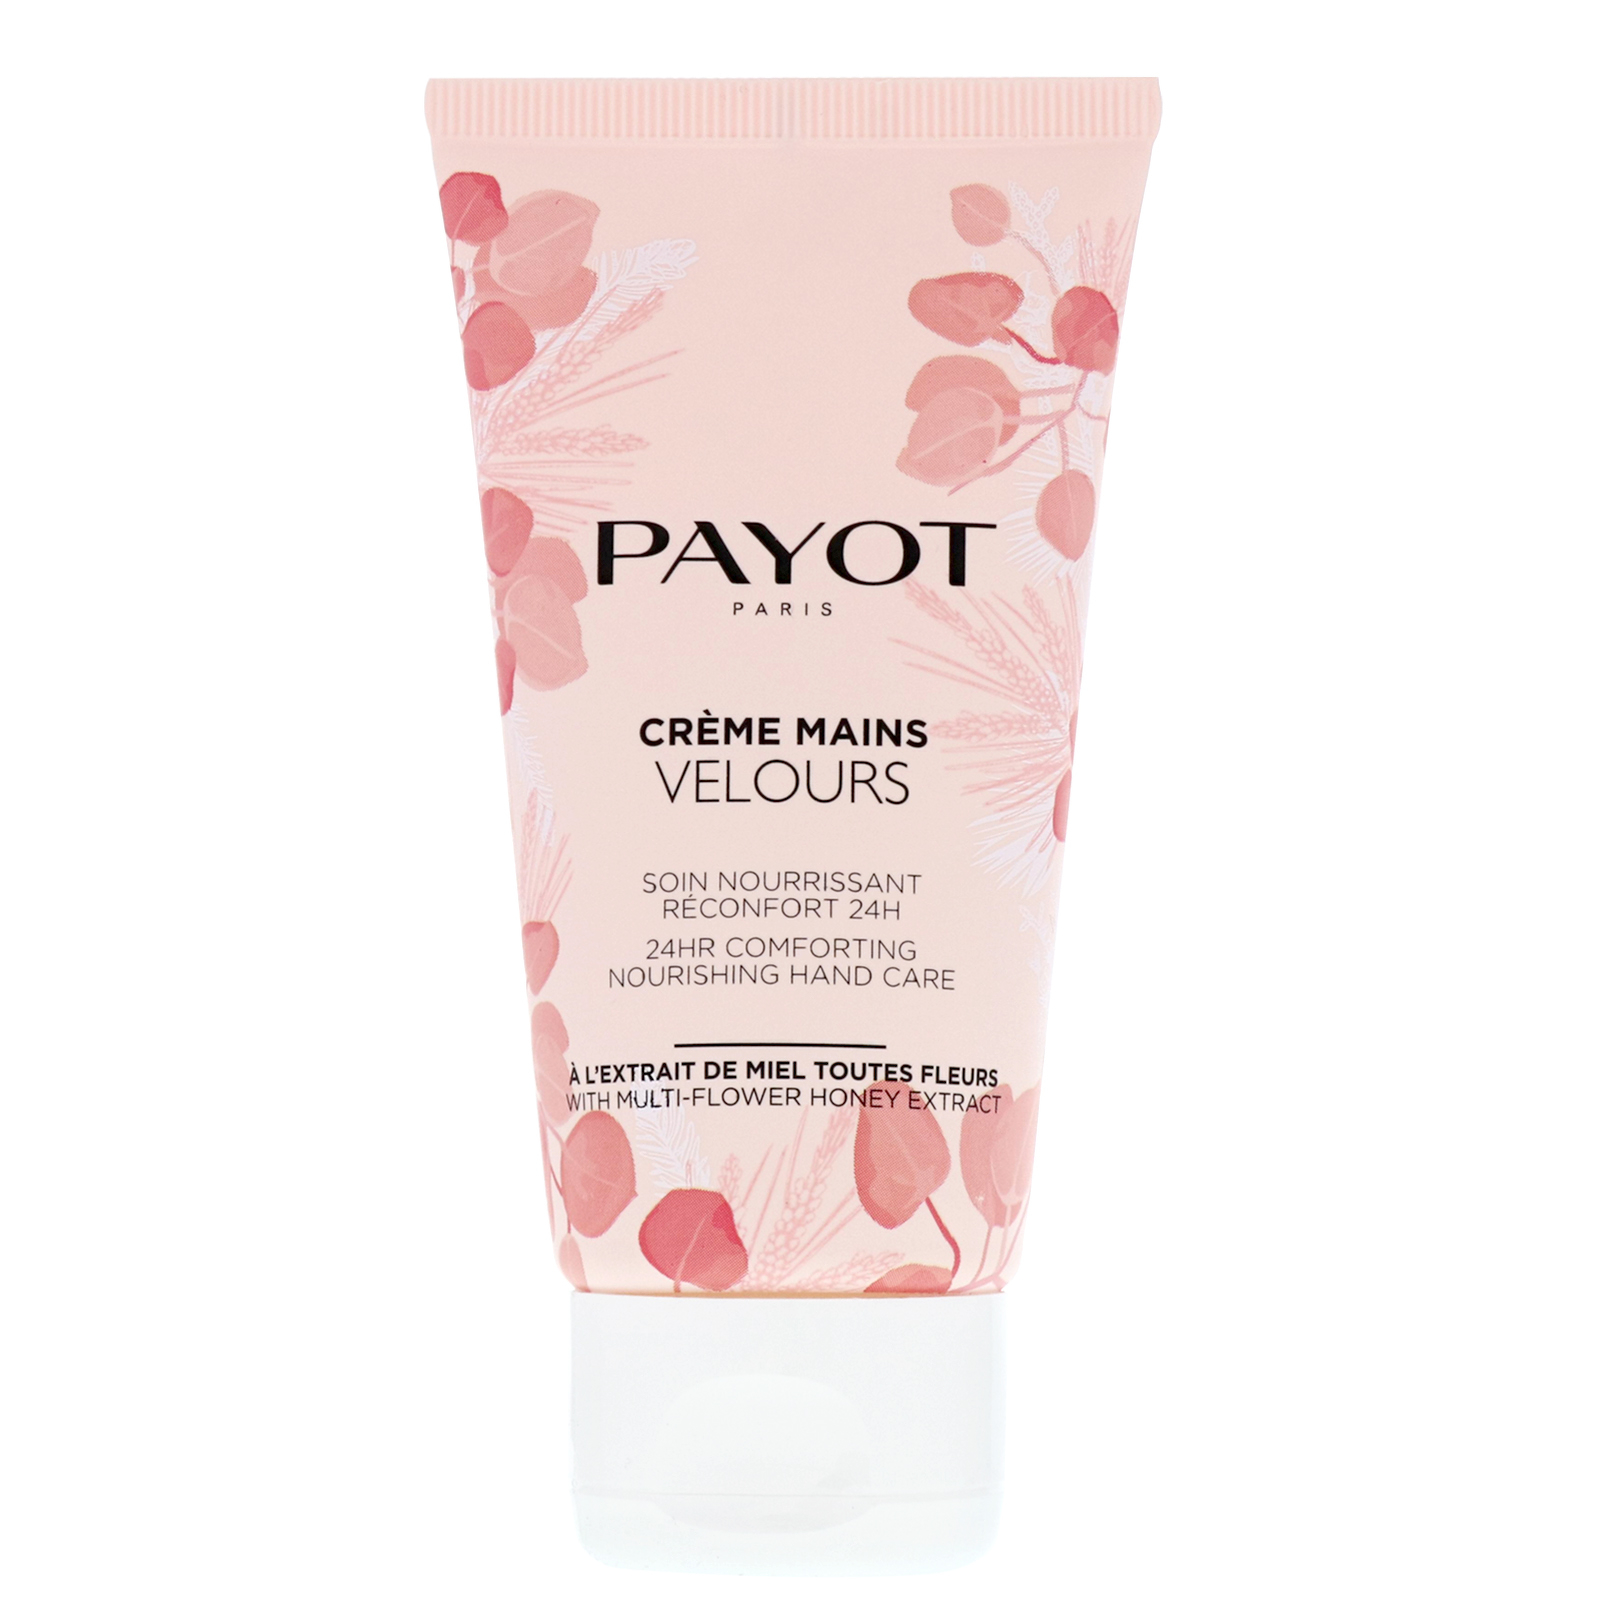 Payot Paris Gentle Body Creme Mains Velours: Comforting Nourishing Hand Care 75ml